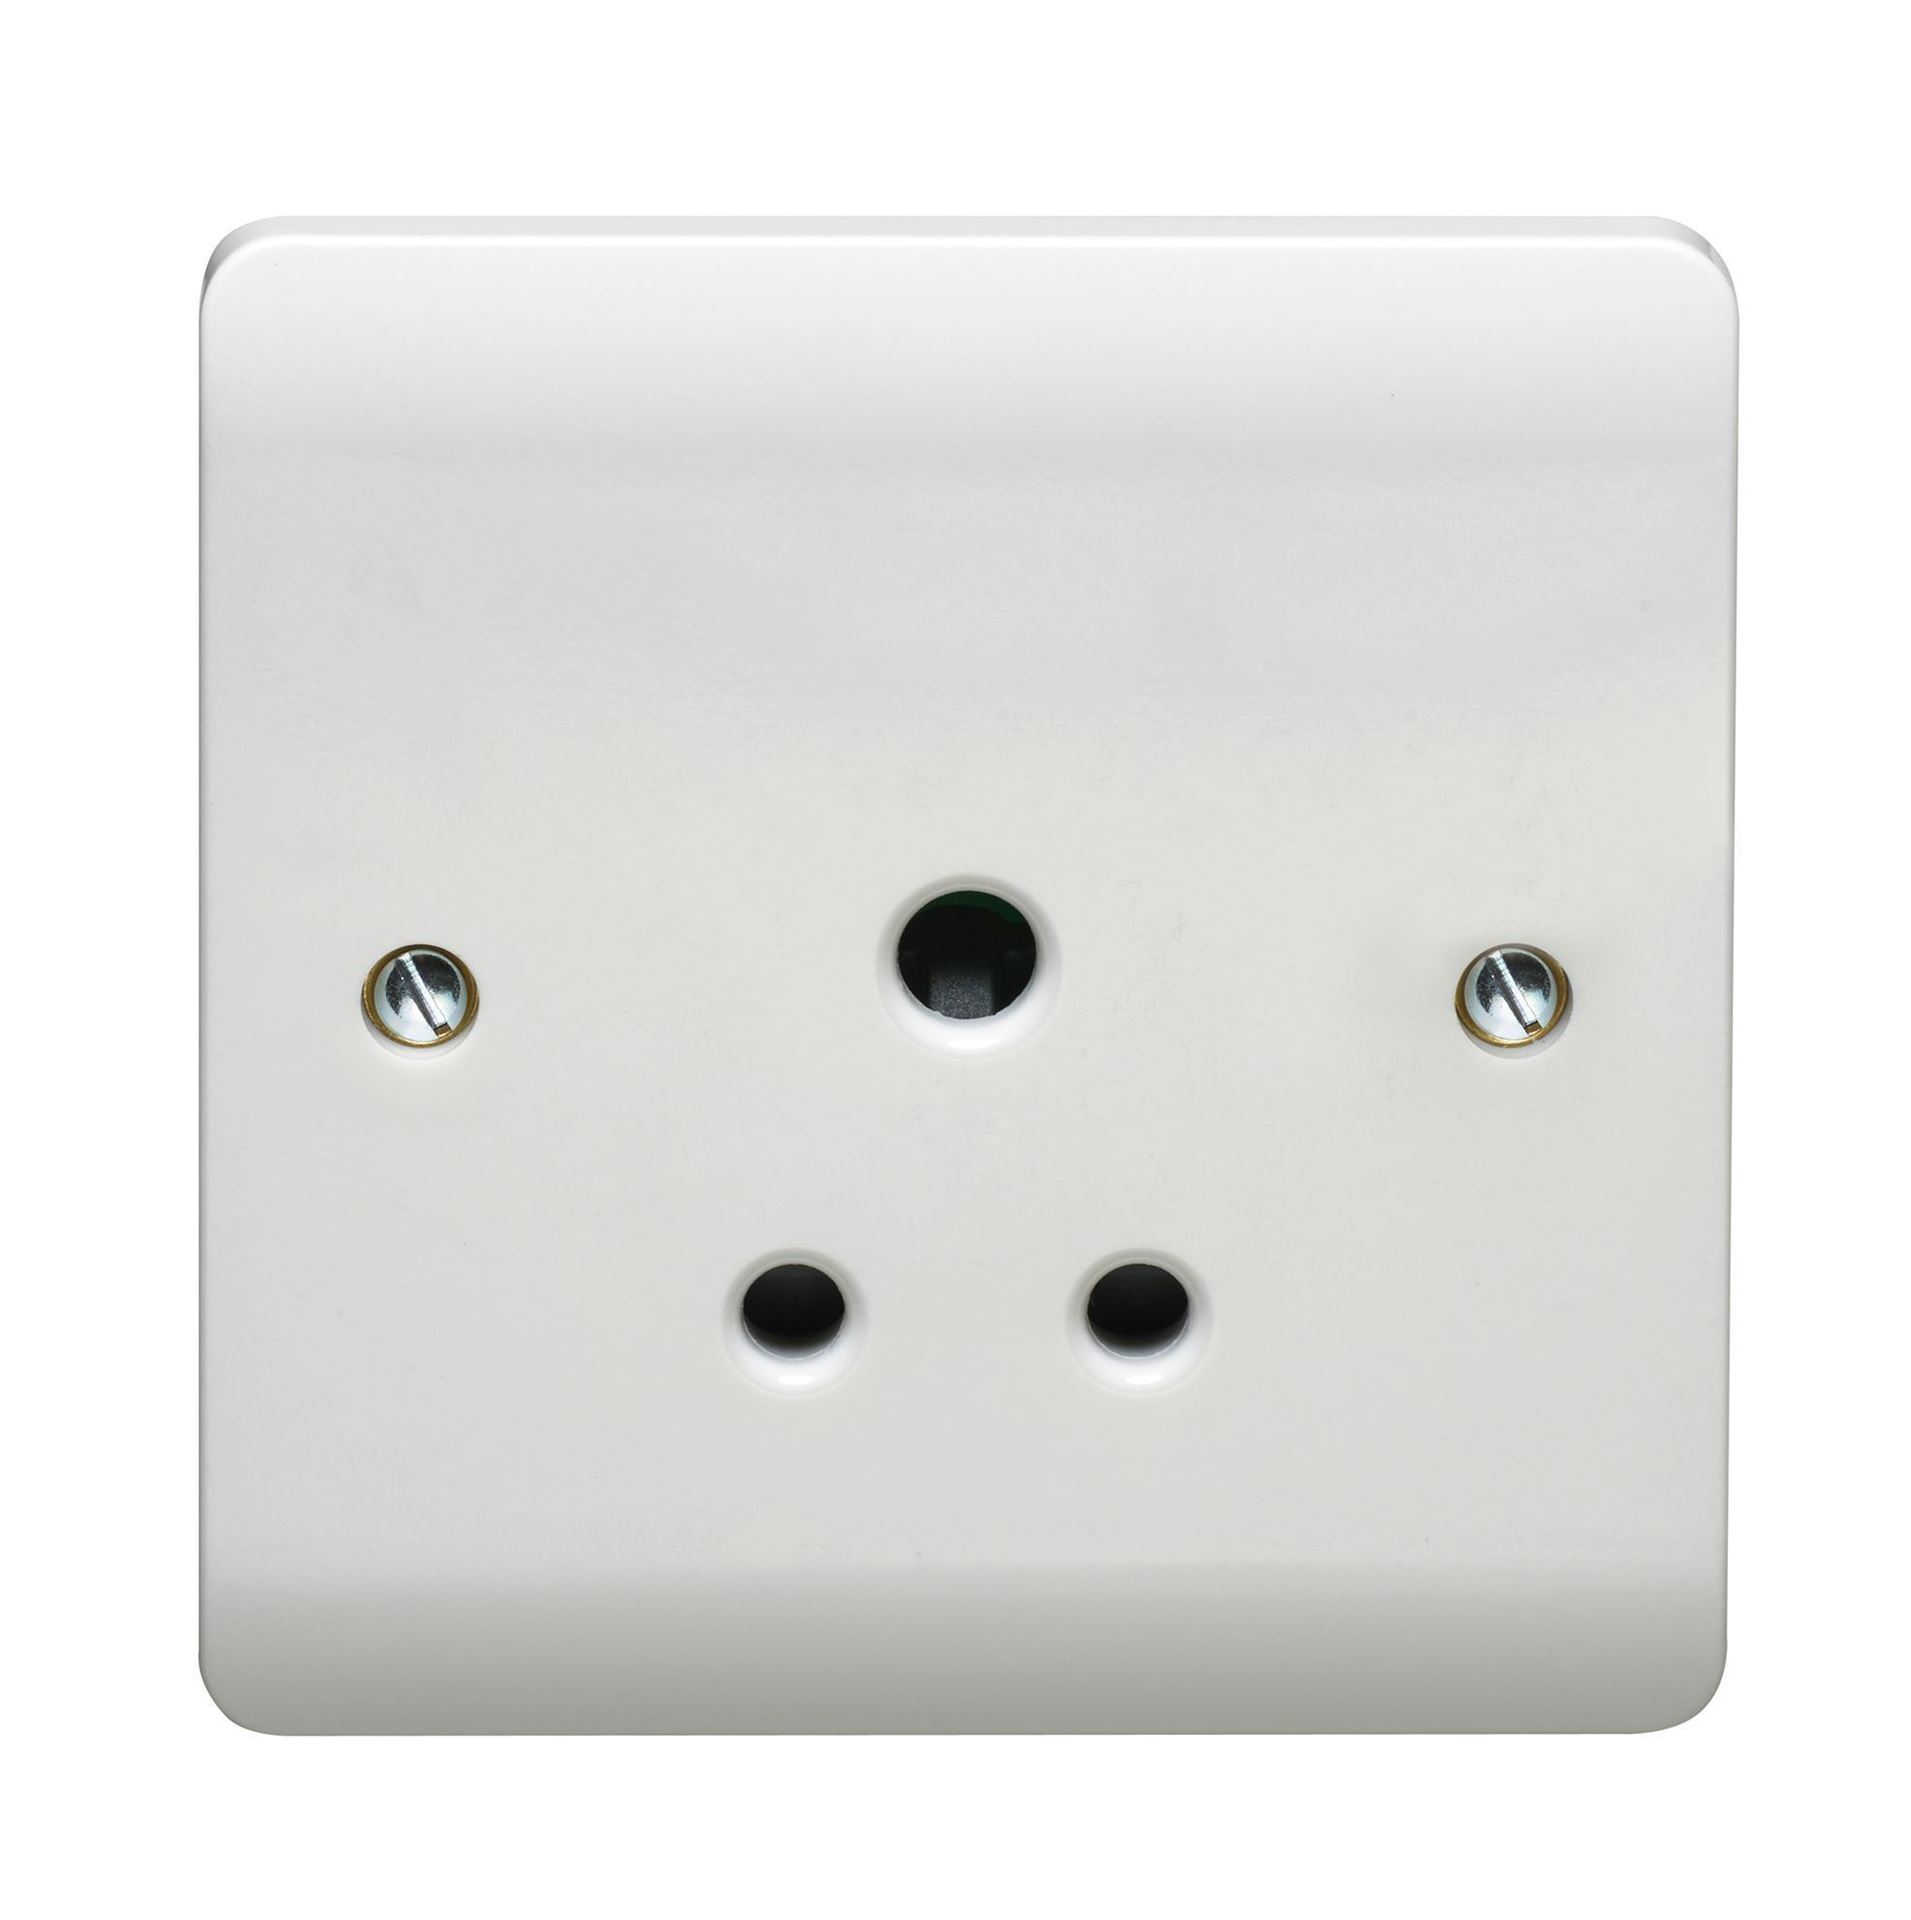 CRABTREE INSTINCT 1G 5A UNSWITCHED SOCKET CR1047